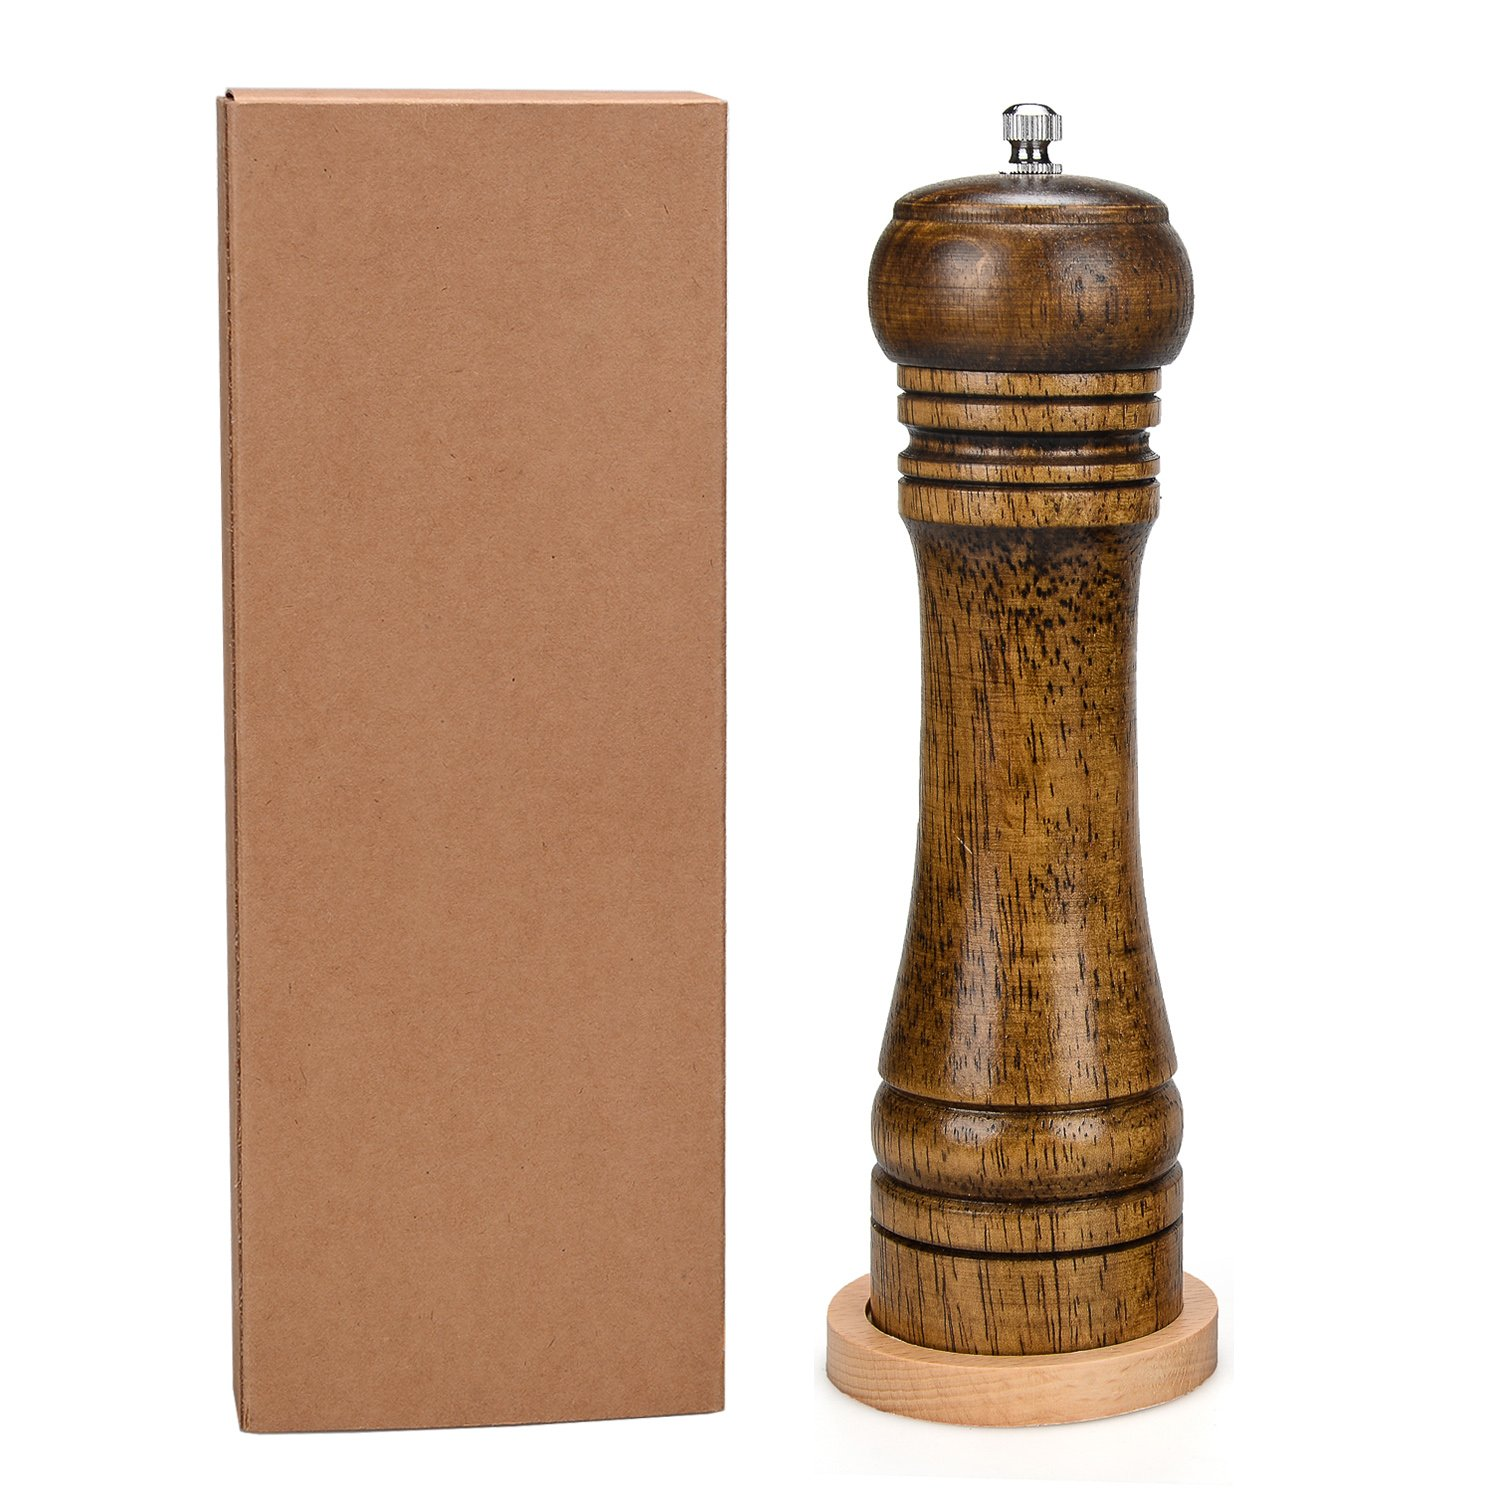 Lazarap Salt Pepper Shaker Sets Solid kitchen pepper mill Wood with a Strong Adjustable Ceramic Pepper Grinder 8 Inch Wooden